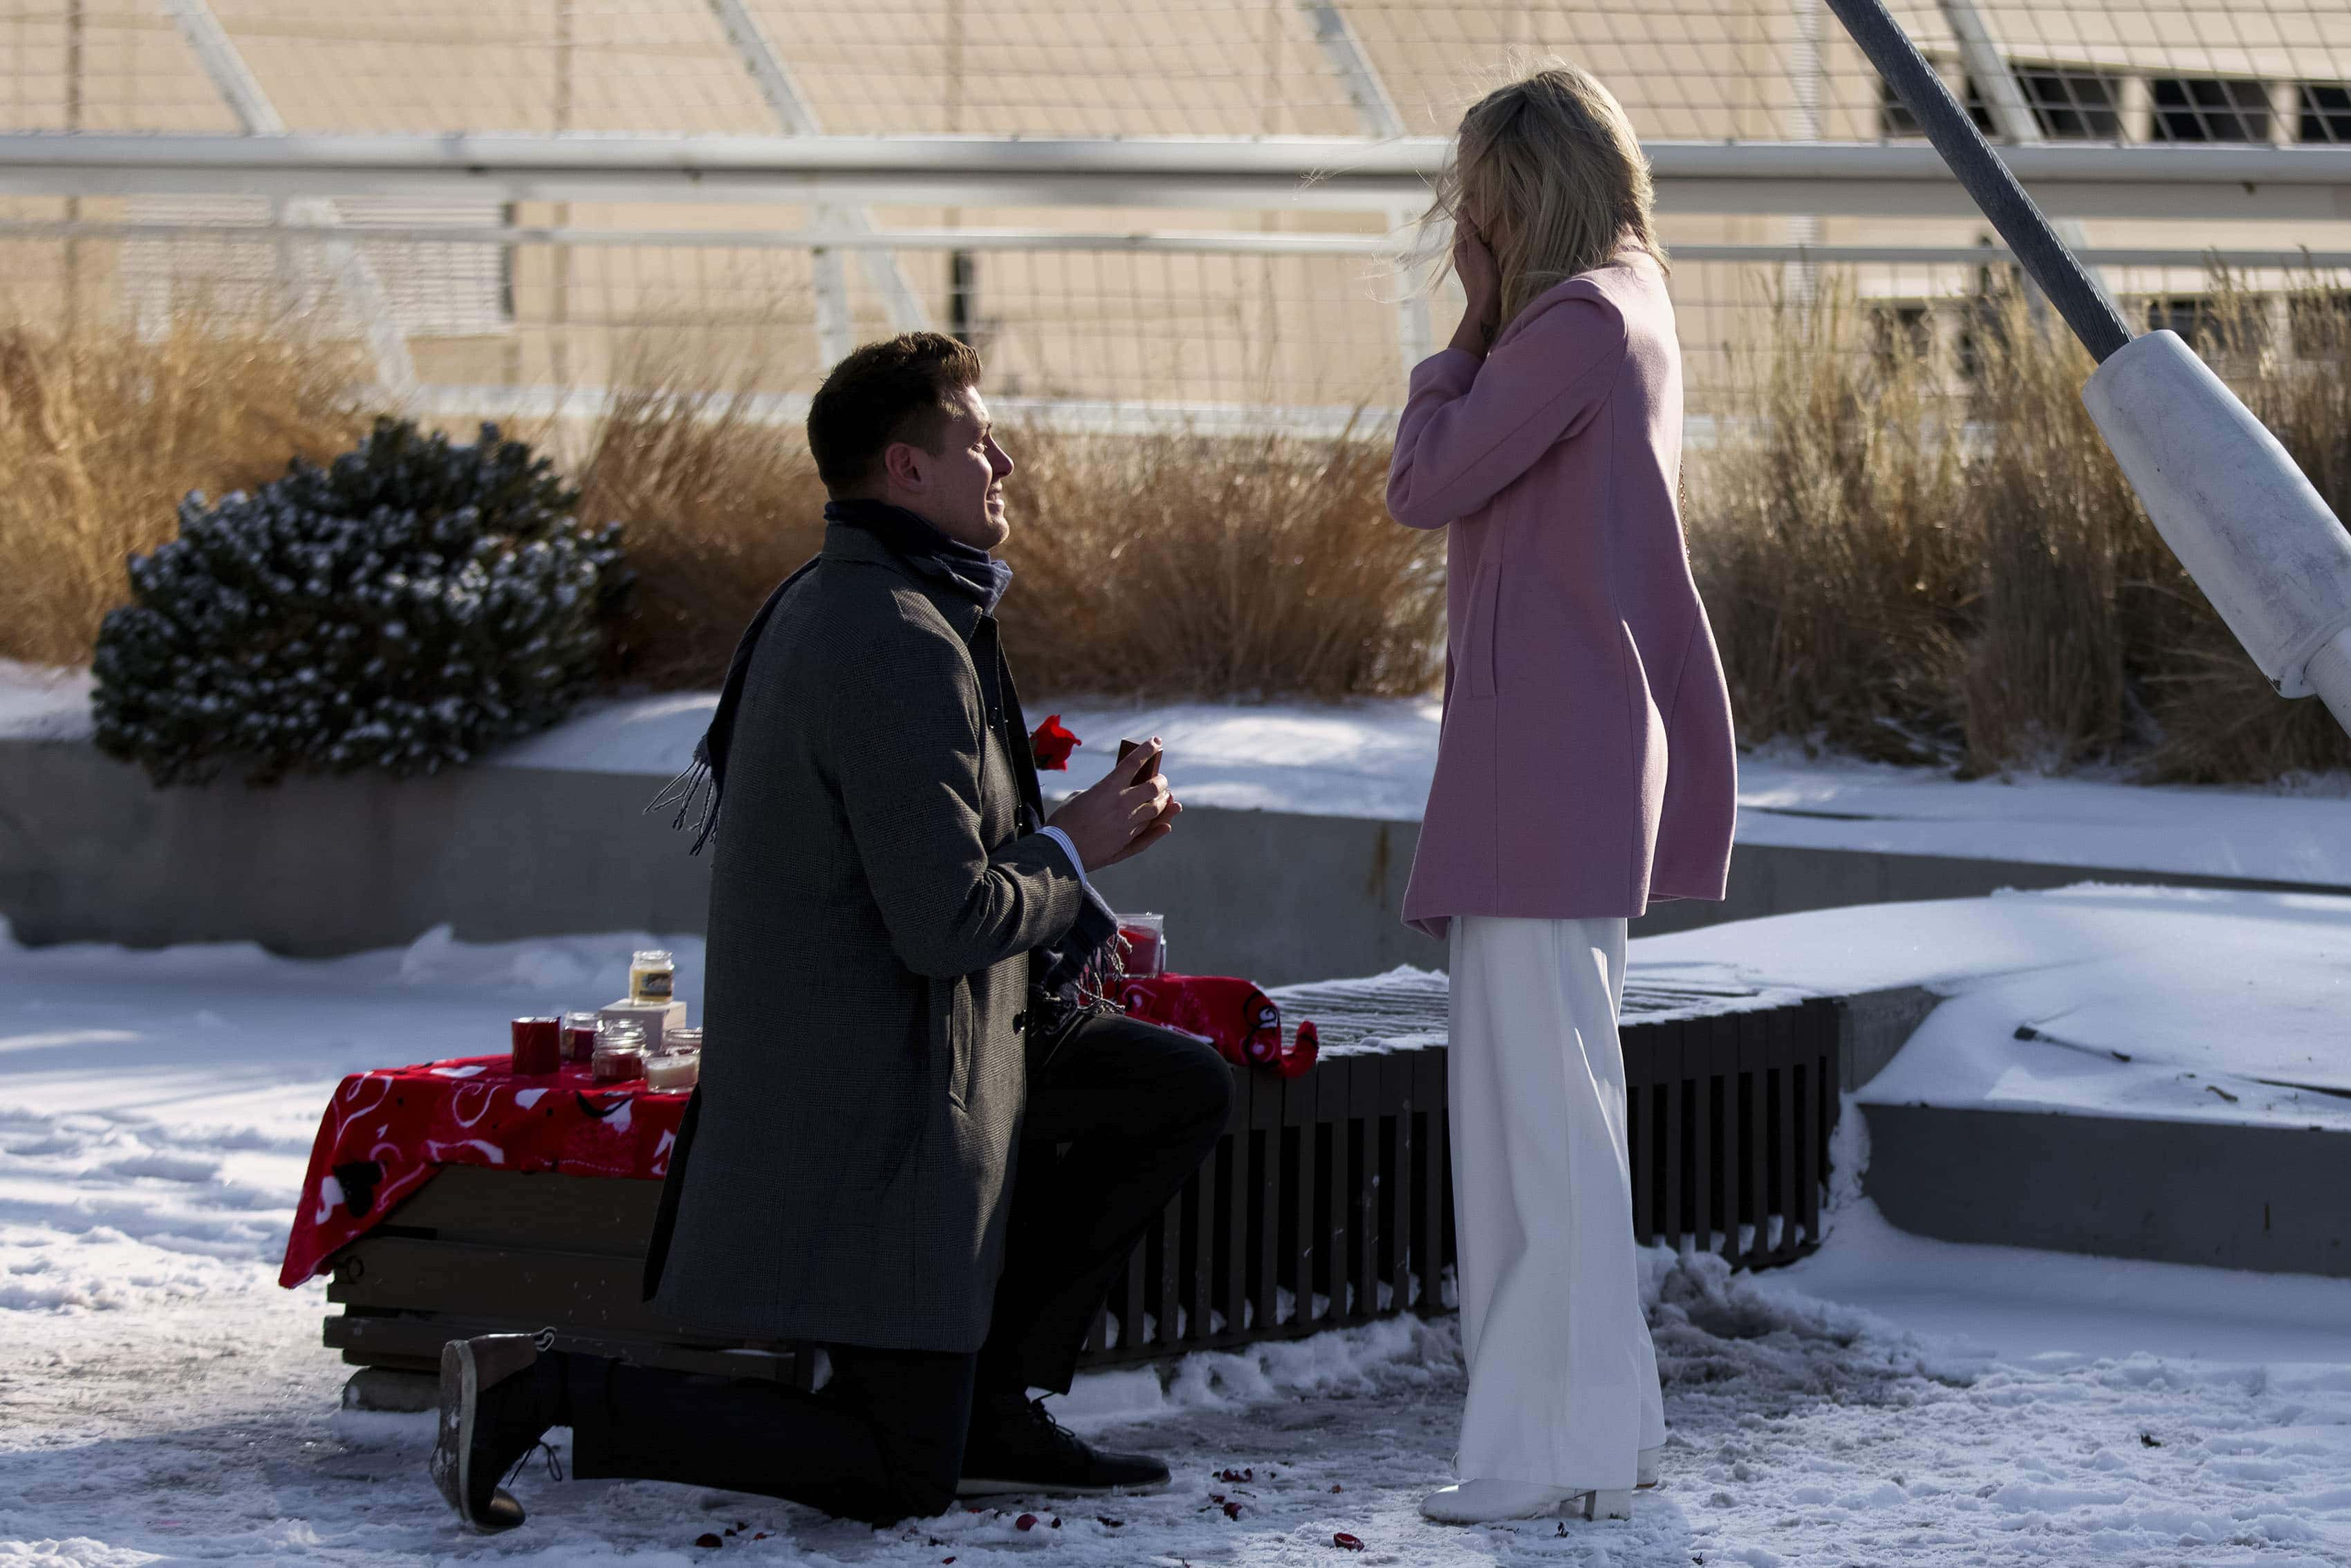 Willy proposes to Kelly on the Denver millennium bridge on Valentines Day